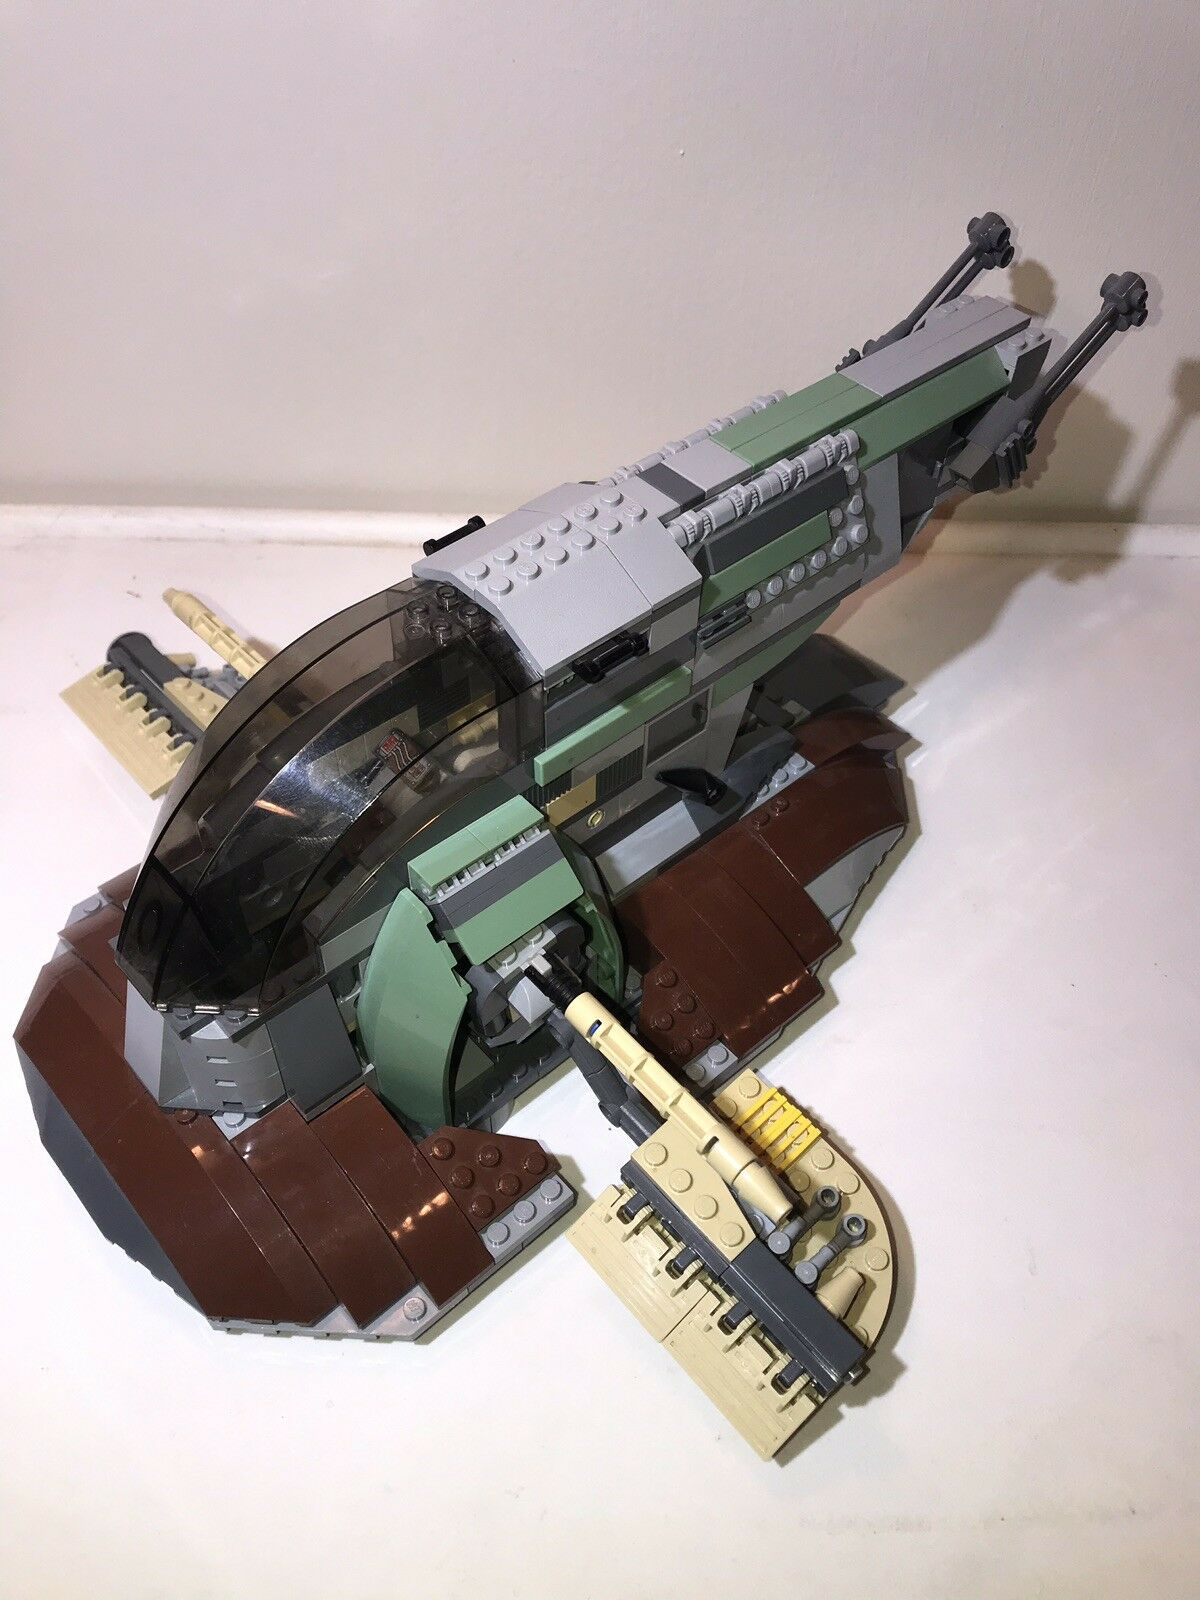 Lego Star Wars Slave I Second Edition 6209 No Mini Figs Or Instructions